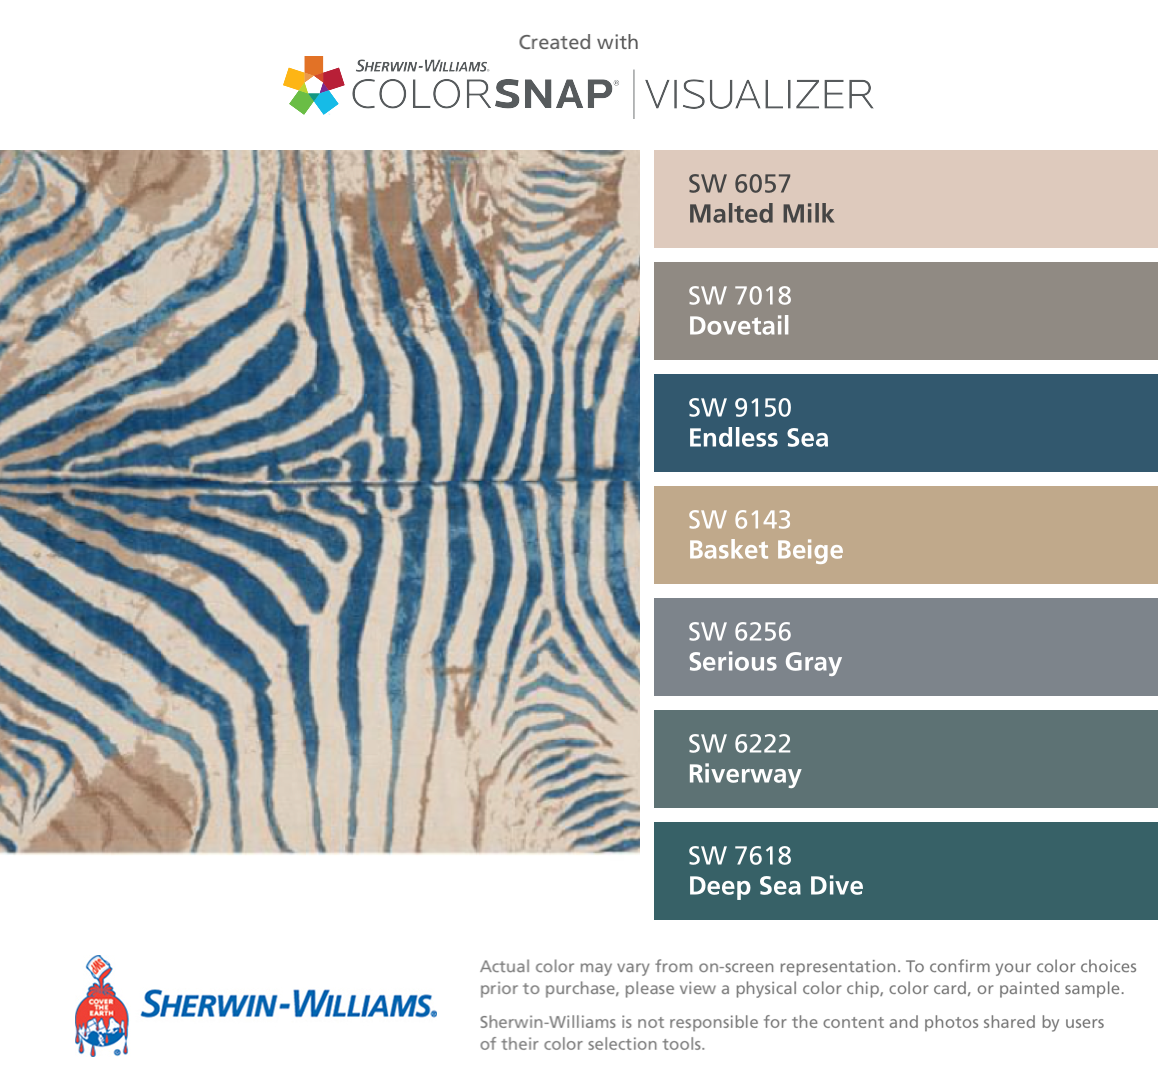 Sherwin williams basket beige photos - I Found These Colors With Colorsnap Visualizer For Iphone By Sherwin Williams Malted Milk Sw Dovetail Sw Endless Sea Sw Basket Beige Sw Serious Gray